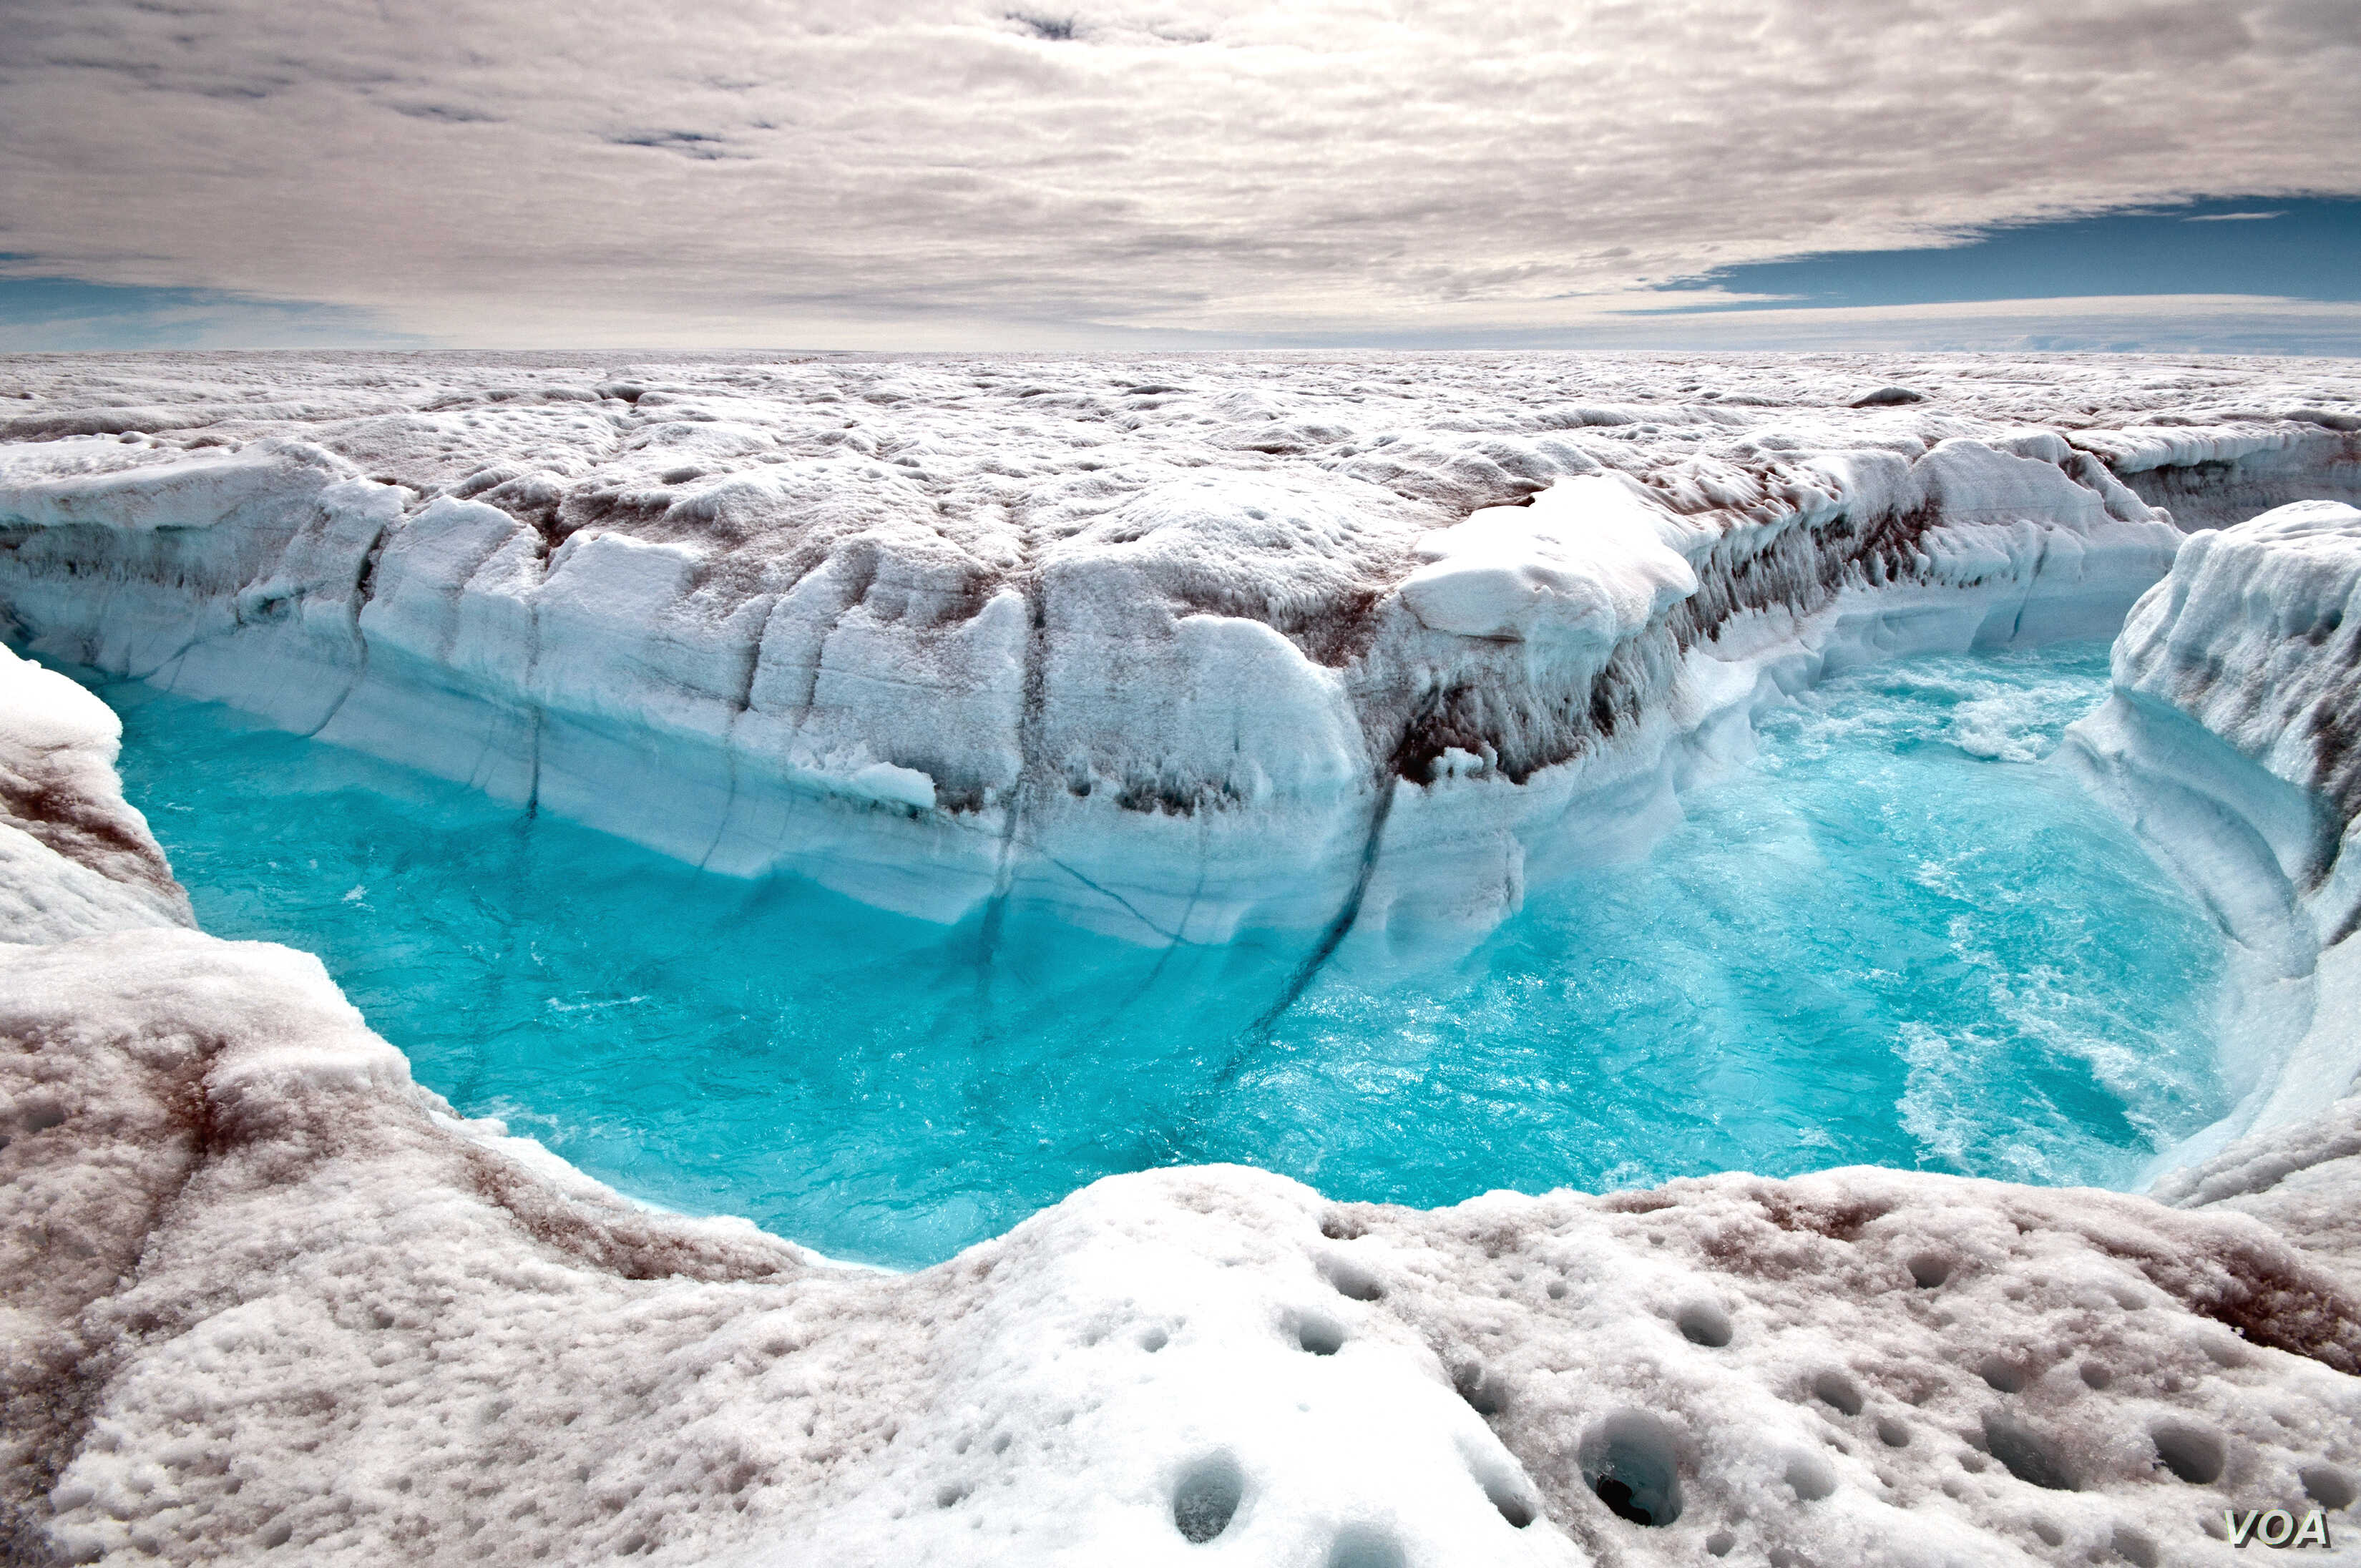 In 2012 polar ice sheets melted at an accelerating rate.  In this photo surface melt water rushes along the surface of the Greenland Ice Sheet through a supra-glacial stream channel. (Ian Joughin)